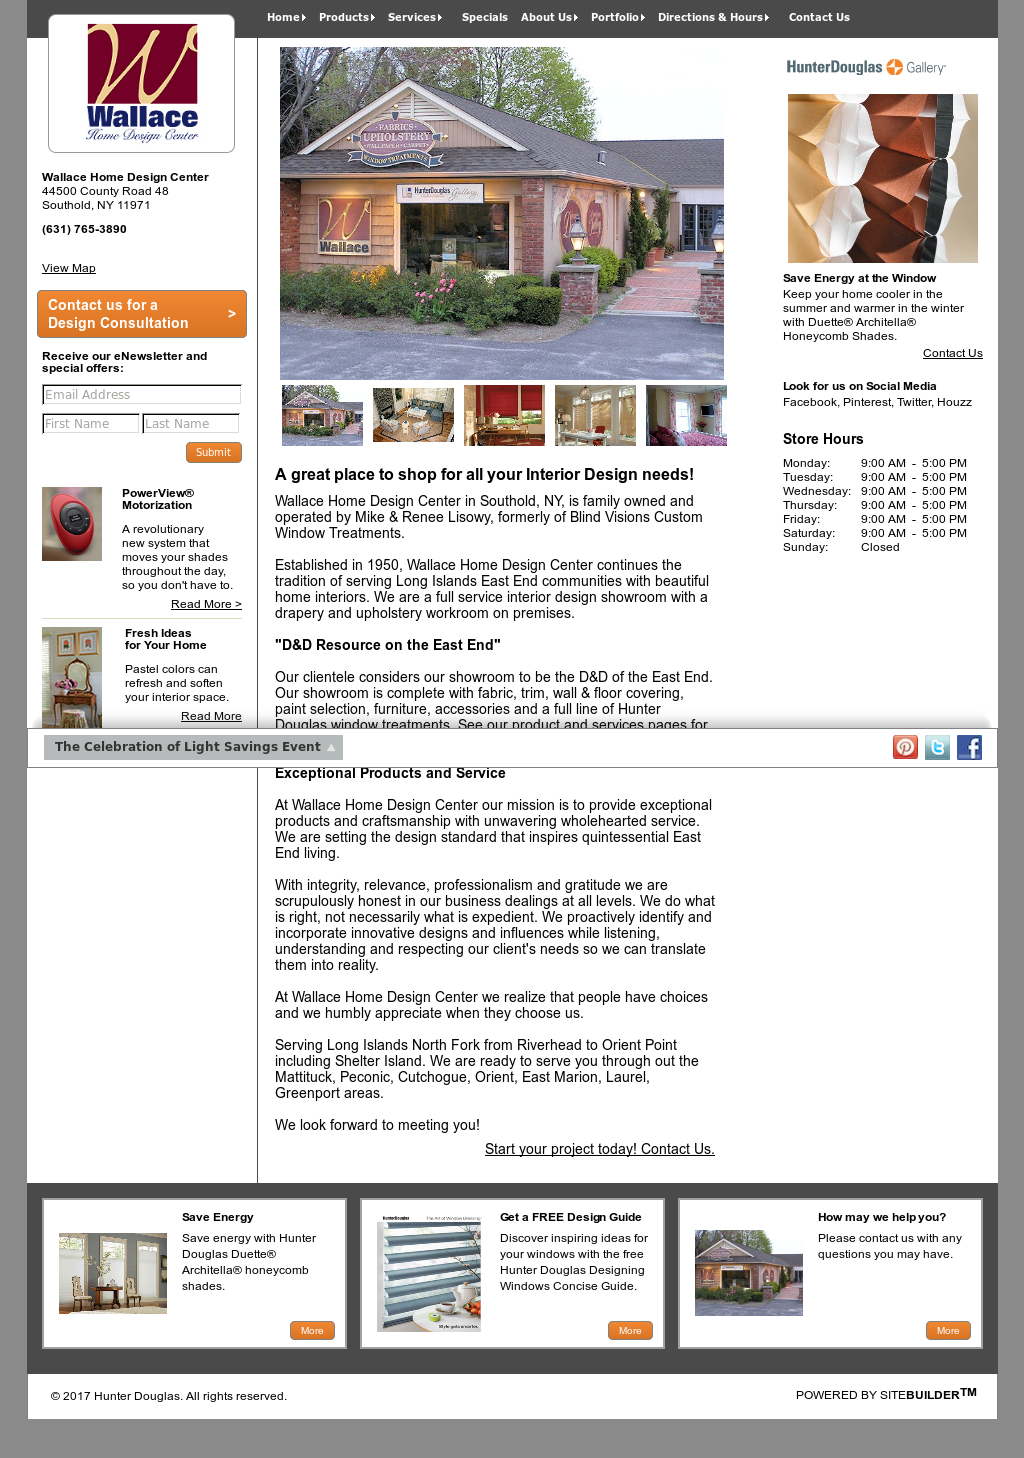 Wallace Home Design Center Website History